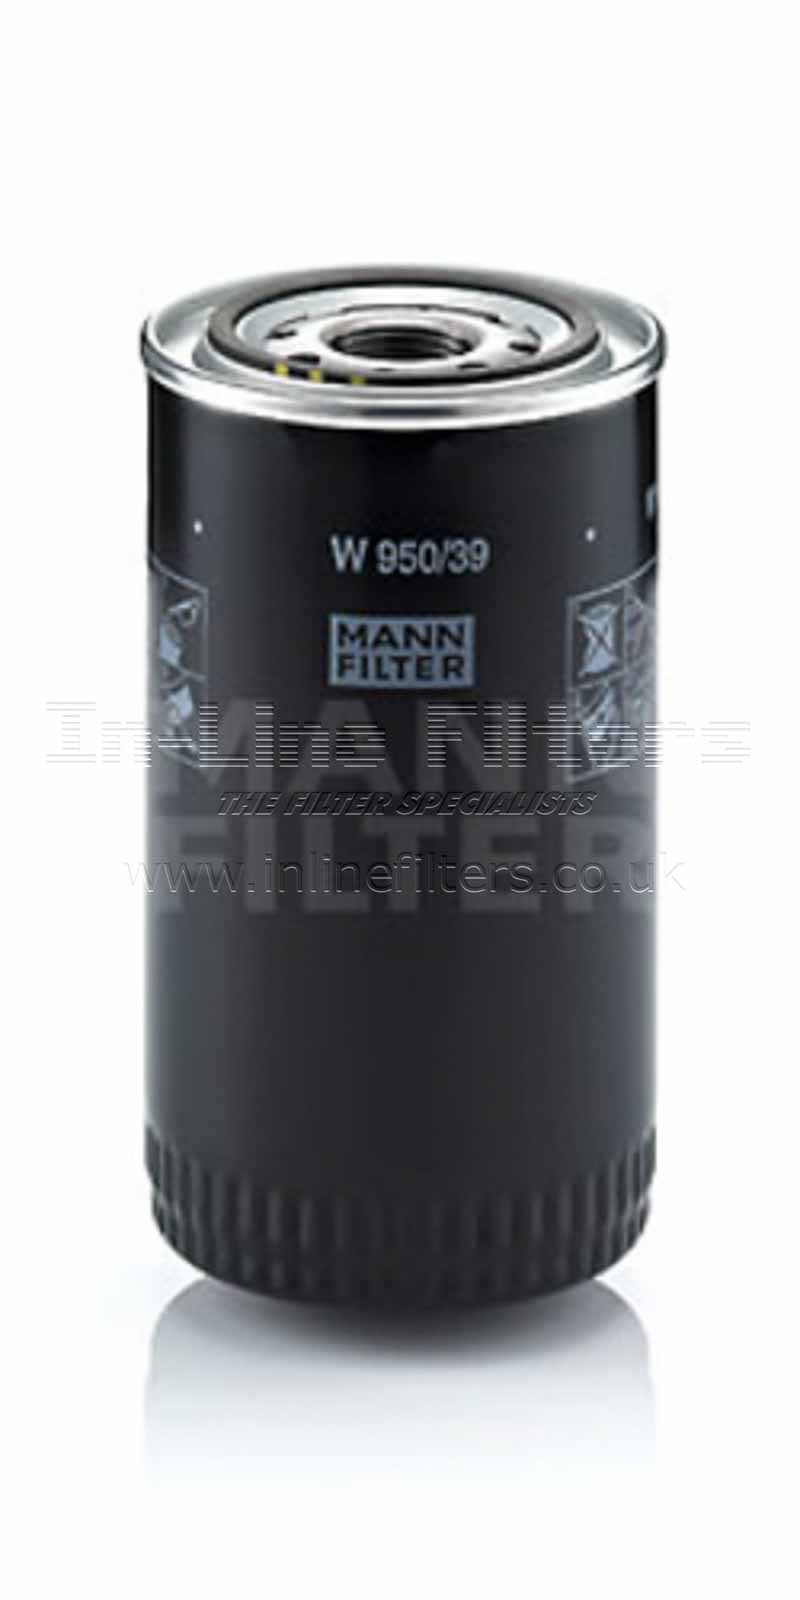 FMH-W950-39 FILTER-Lube(Mann W950/39) - Click Image to Close